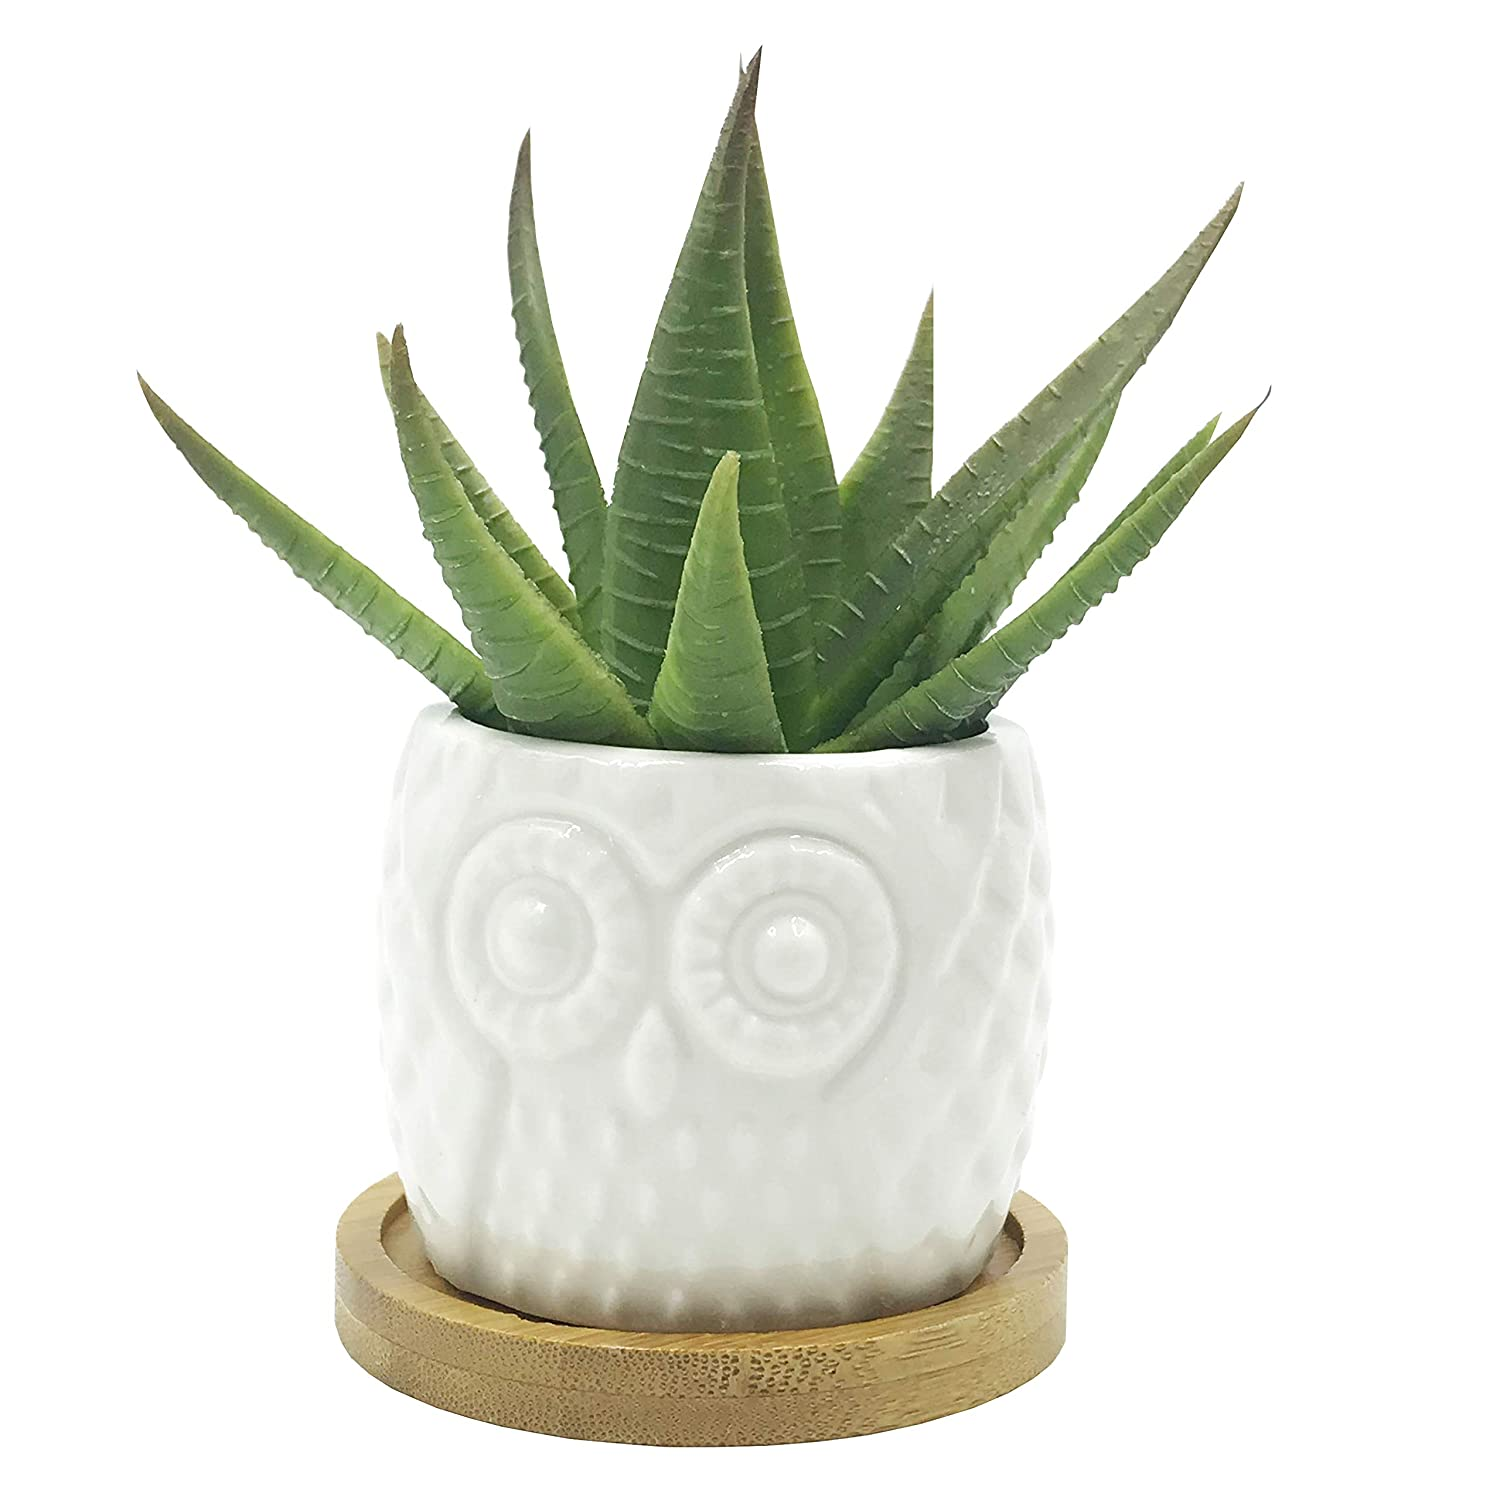 Cute Cartoon Animal Owl Shaped Ceramic Cactus Succulent Flower Plant Pot Planter with Bamboo Tray Plant Not Included